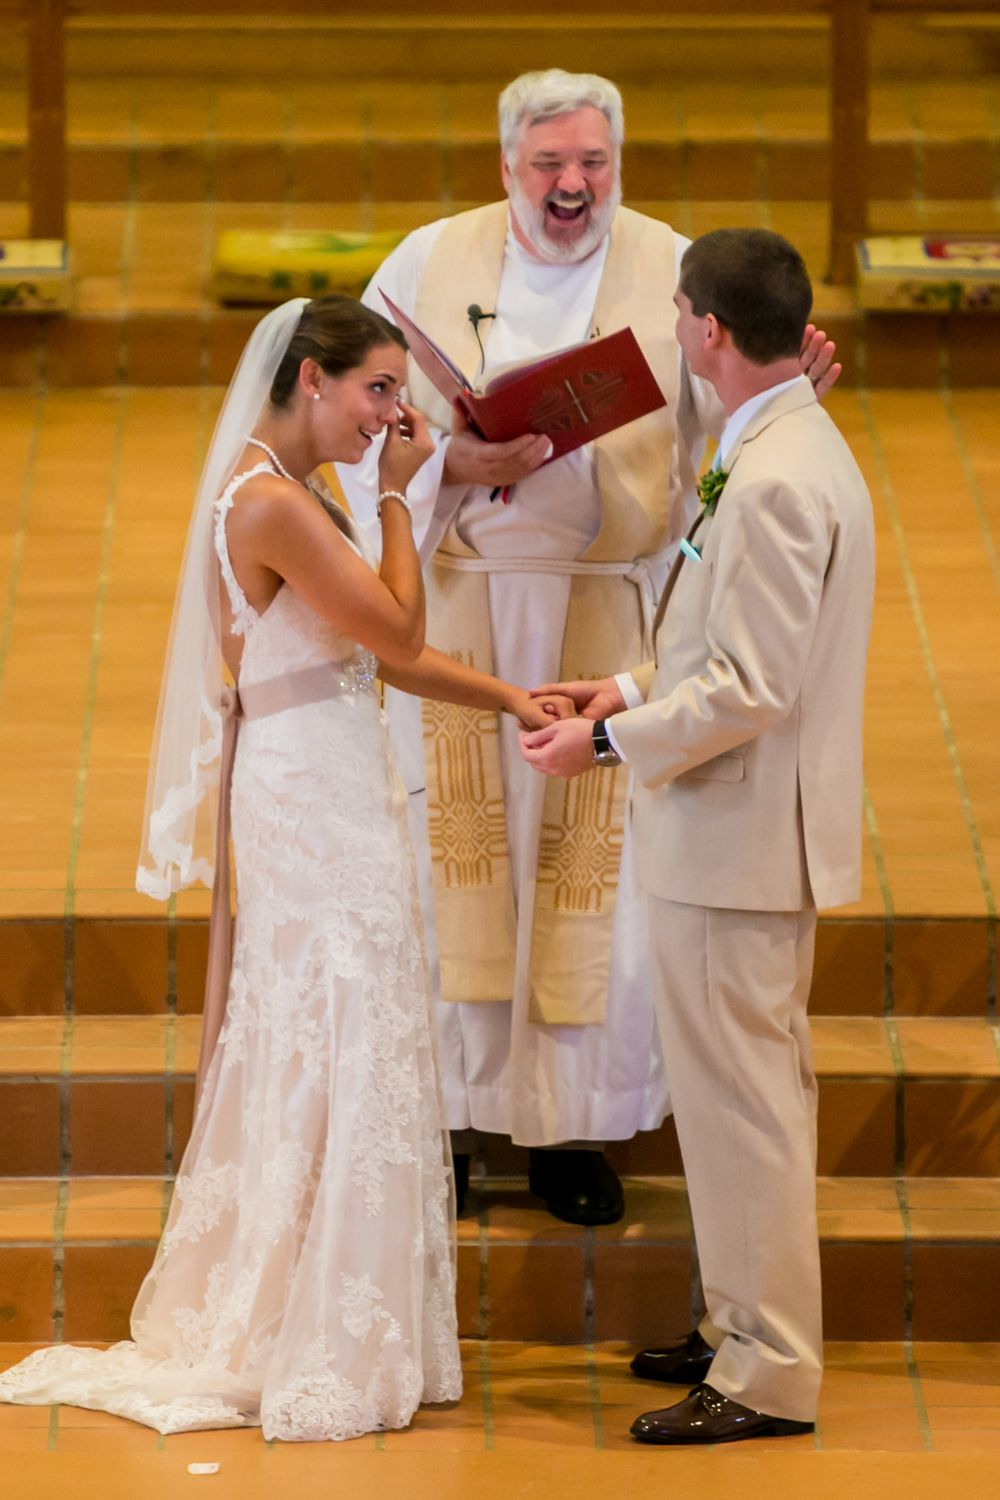 Alex and Mike exchange vows during their wedding ceremony at Incarnation Lutheran Church in Columbia, SC.